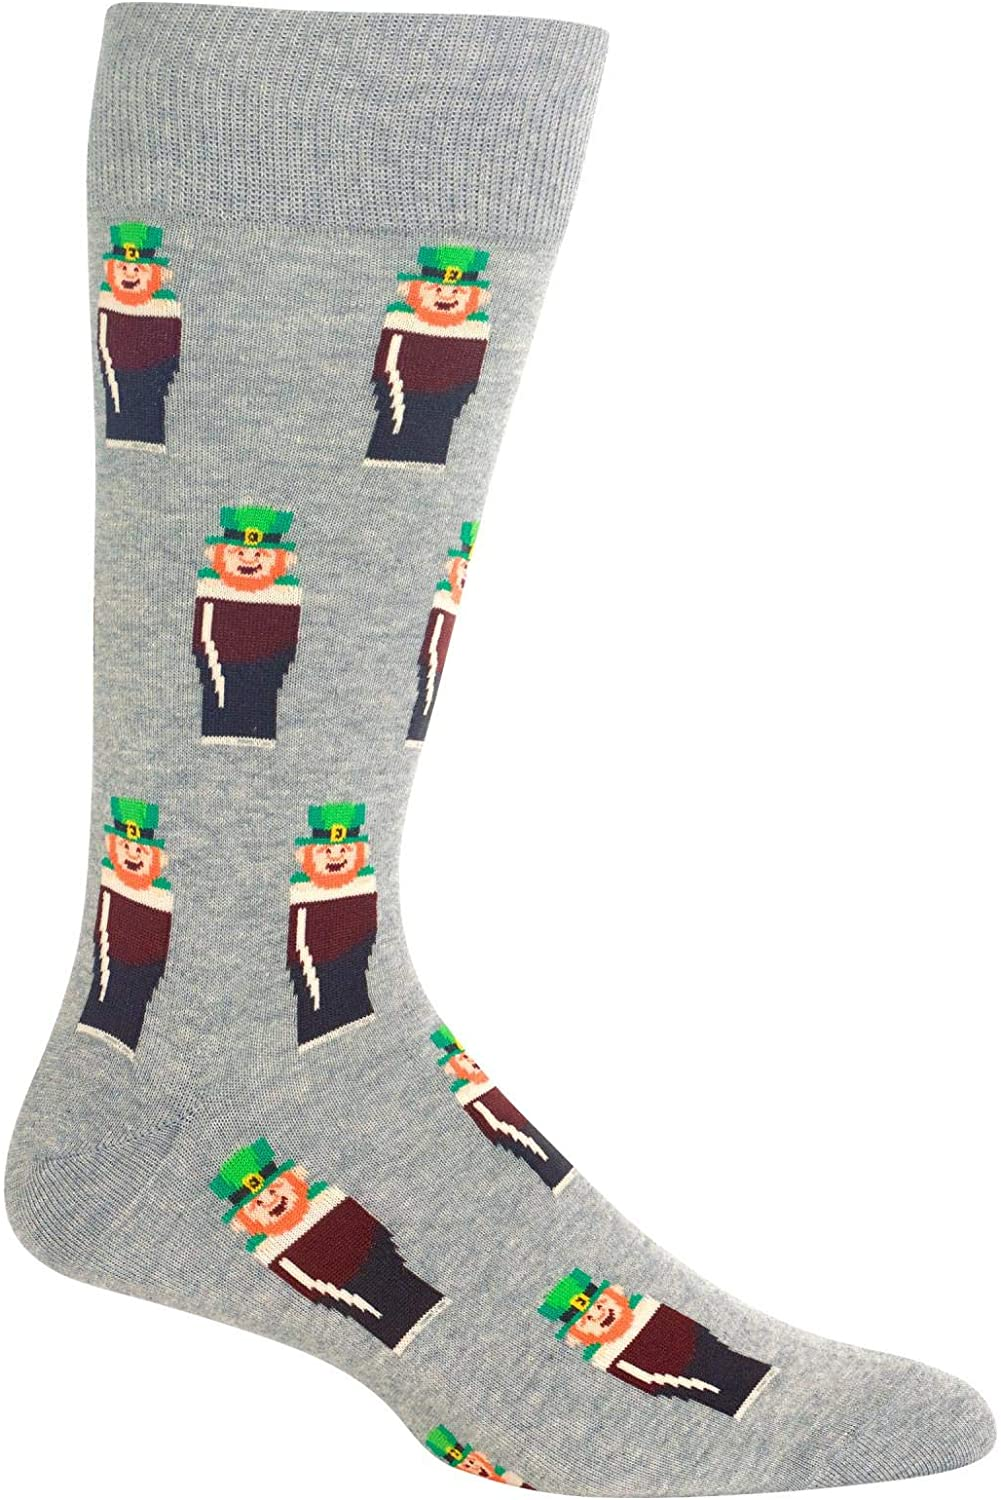 HotSox Mens Leprechauns Socks, 1 Pair, Mens Shoe 6-12.5